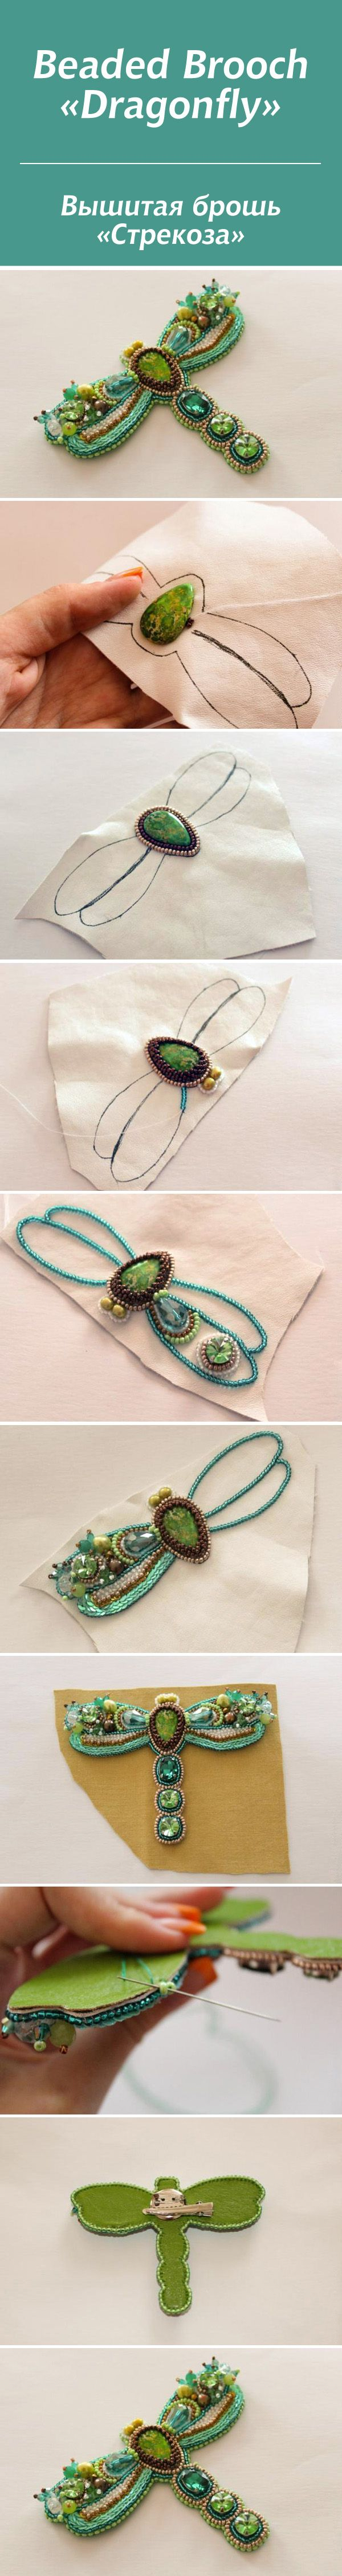 #bead #tutorial - Love seeing the visual, need to do more planned bead embroidery.